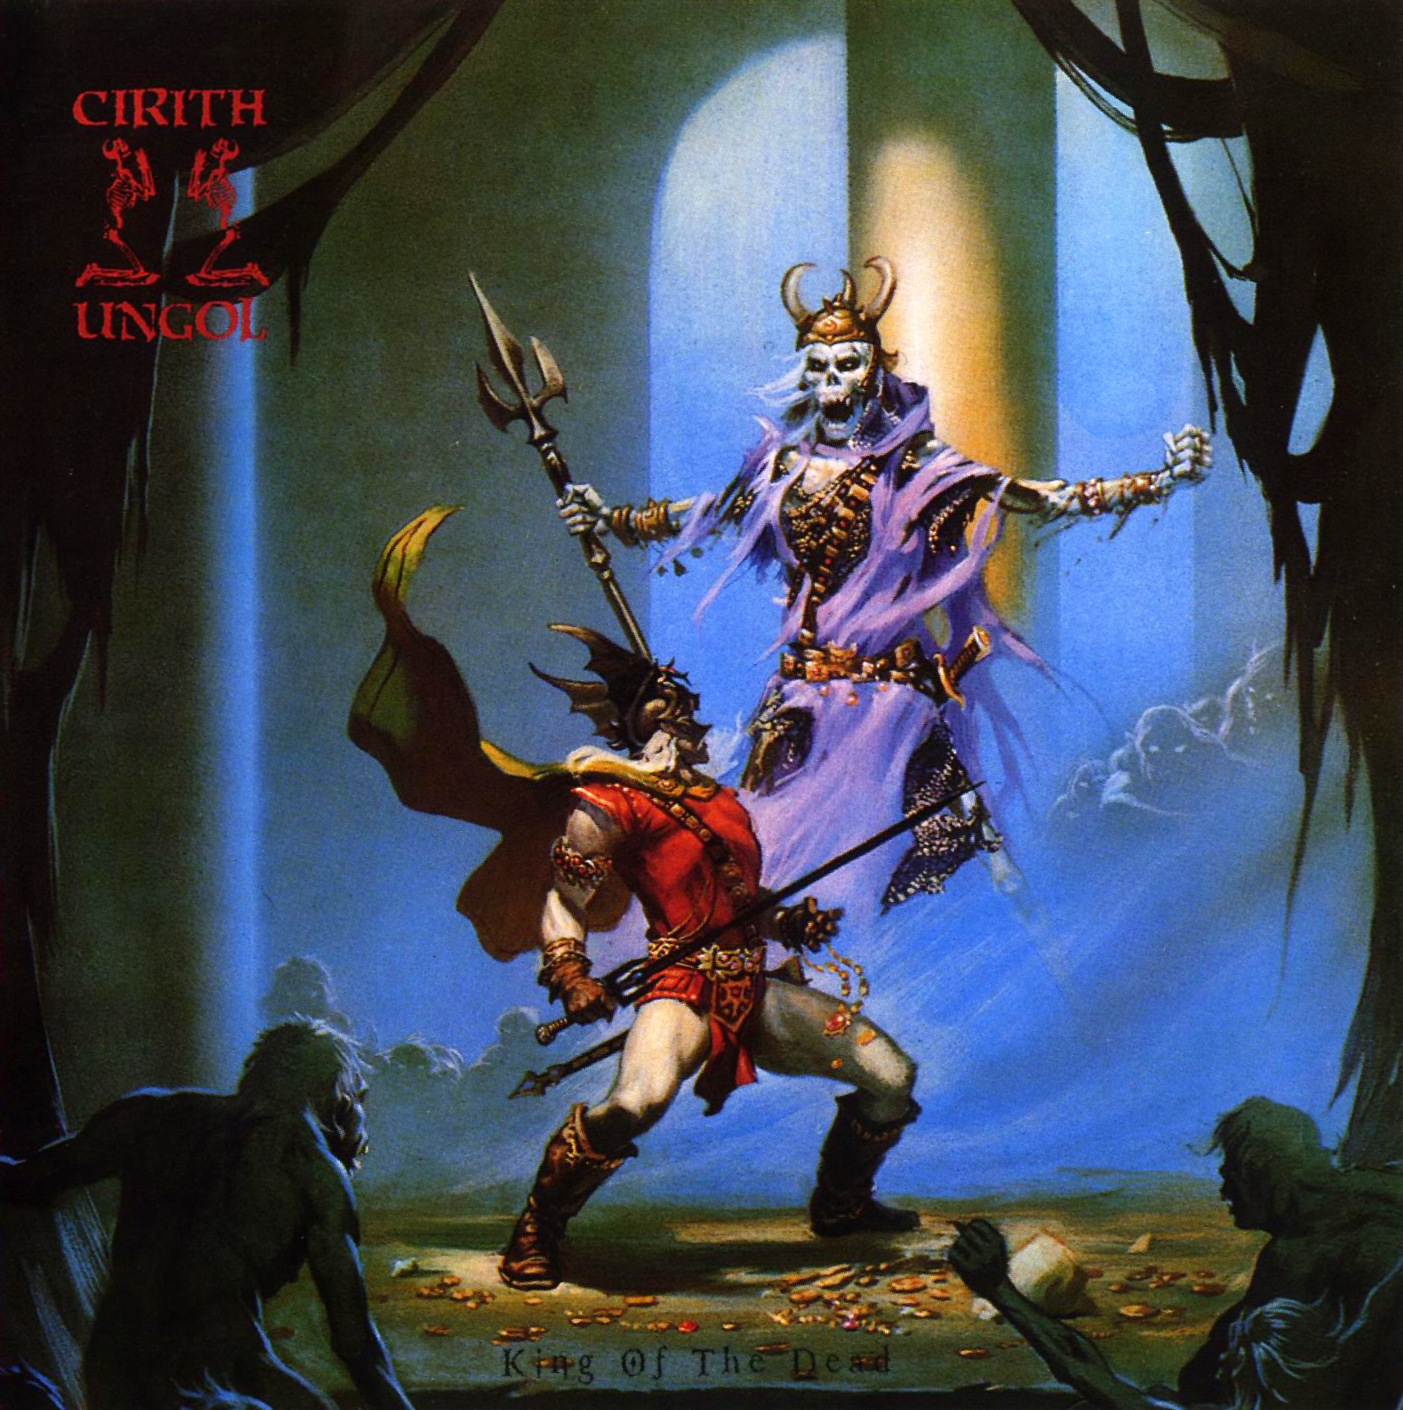 CIRITH UNGOL – King of the Dead